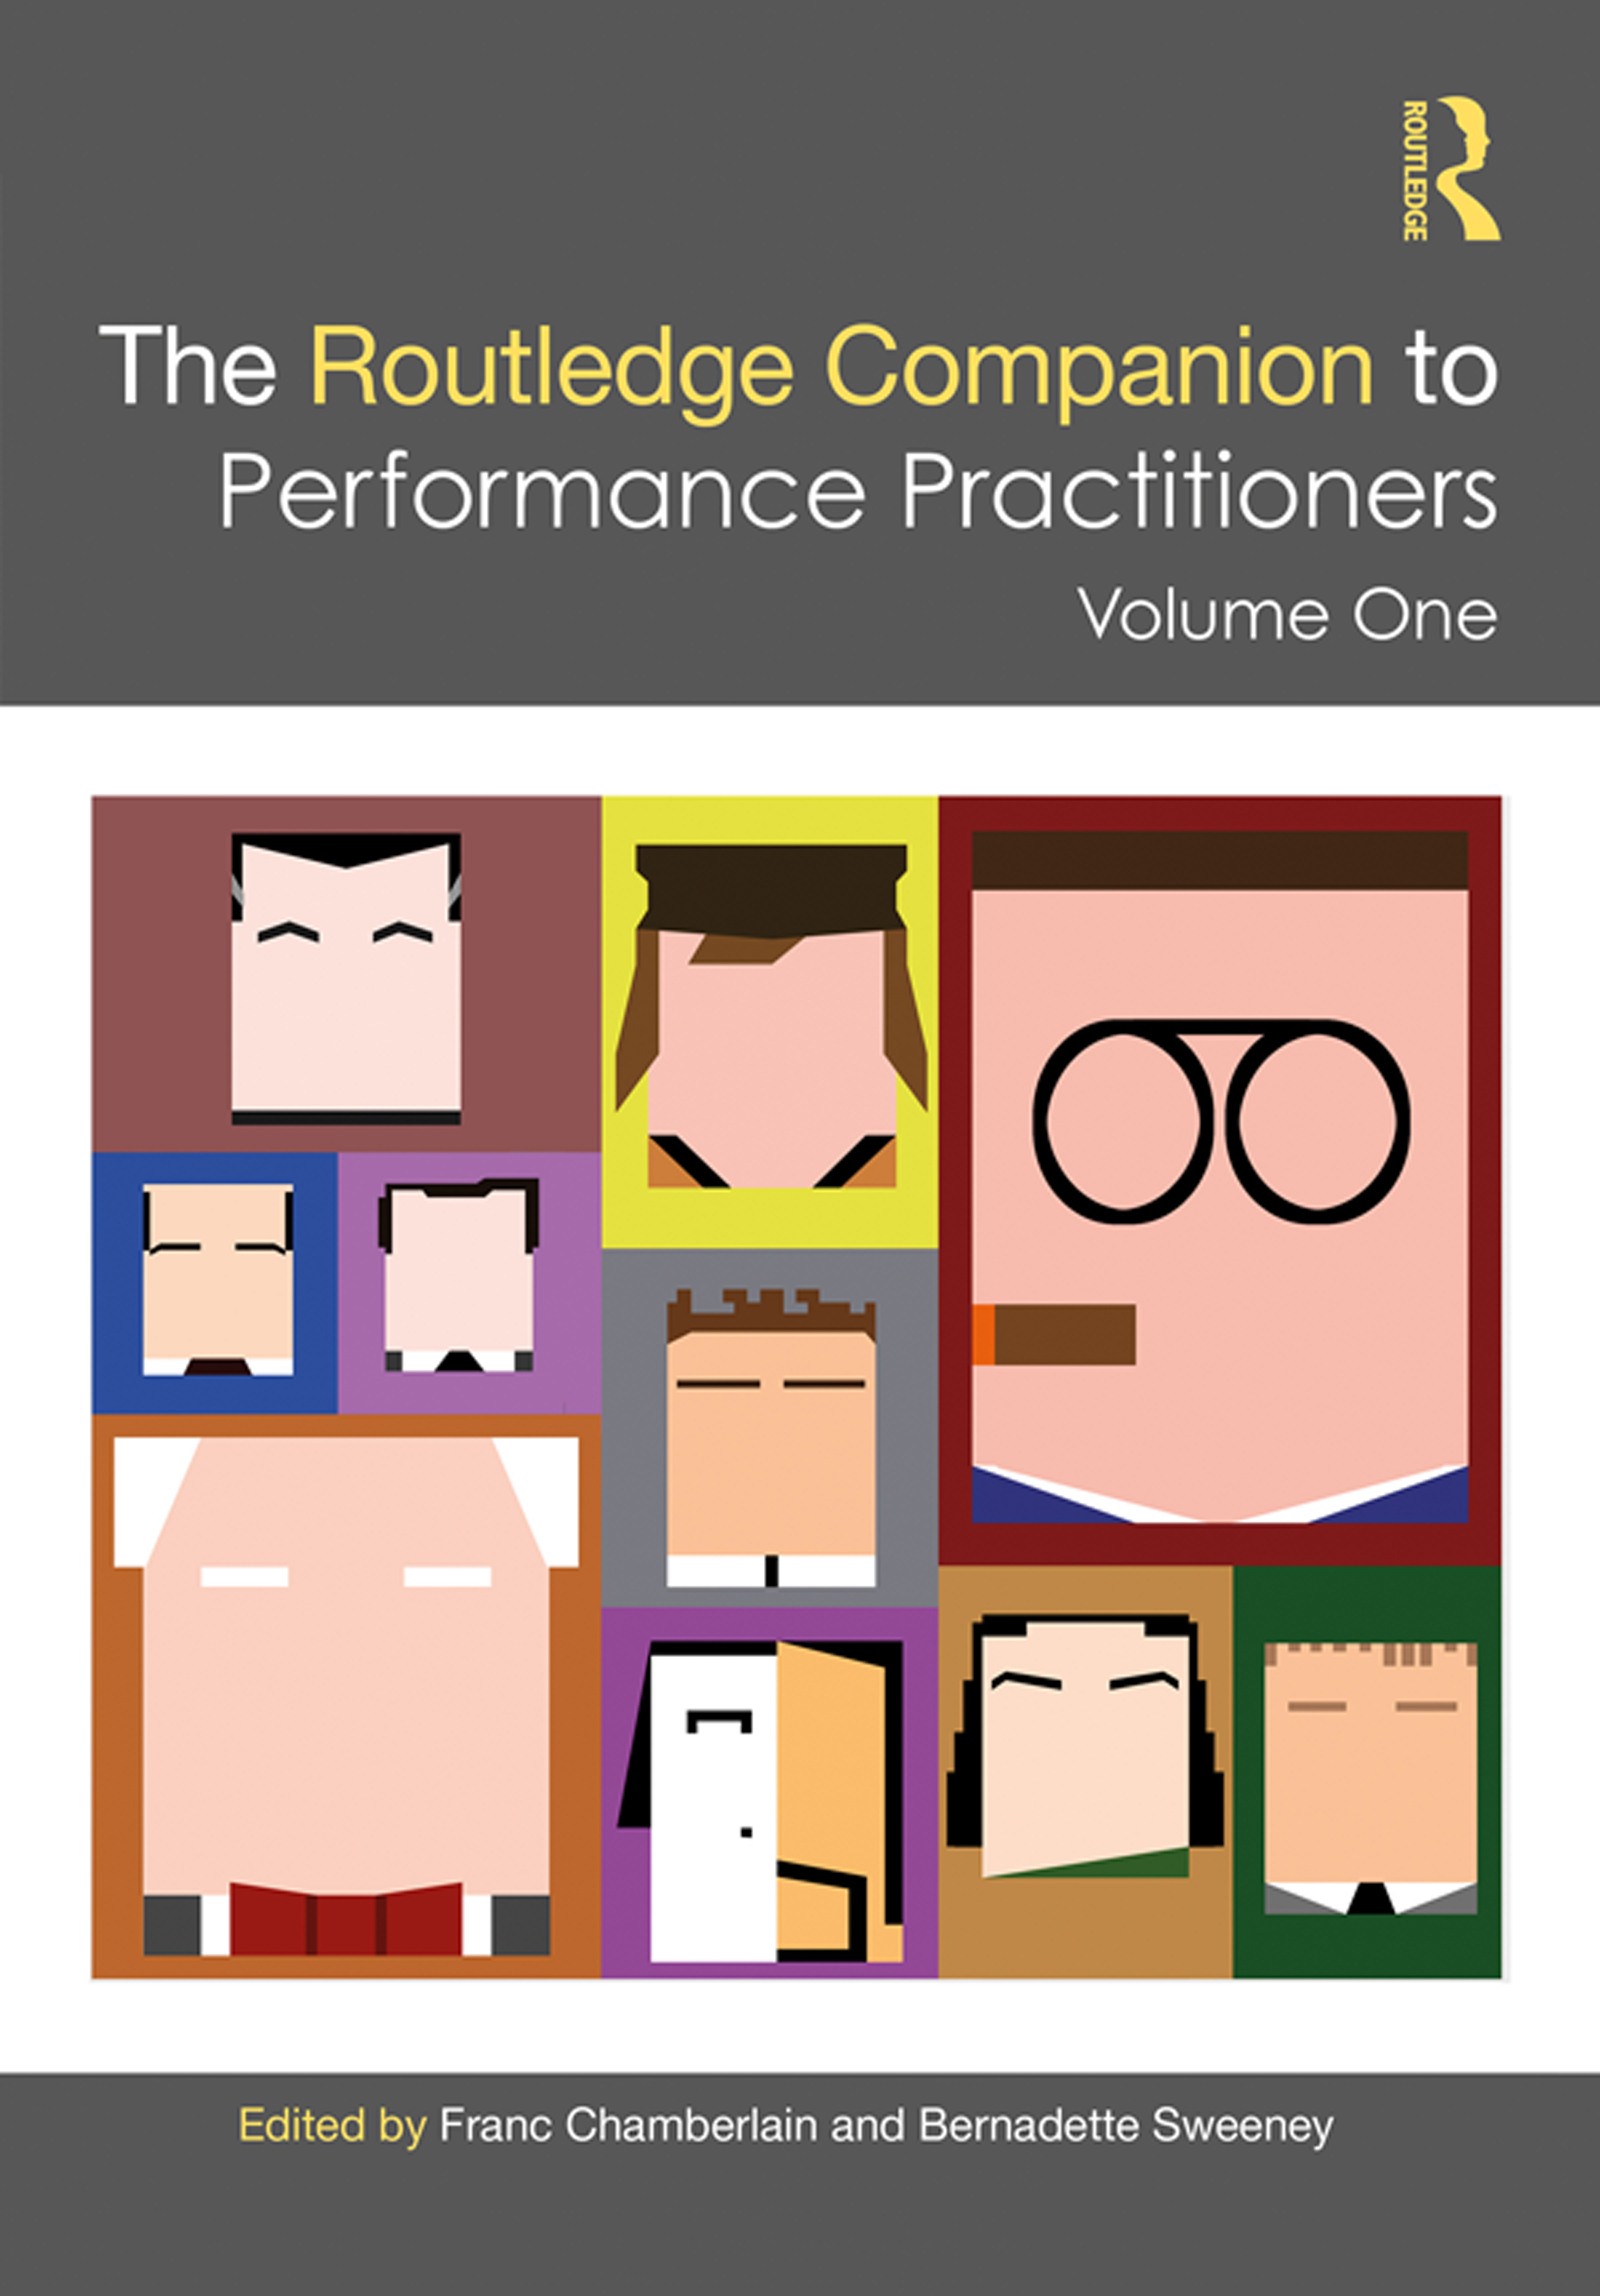 The Routledge Companion to Performance Practitioners